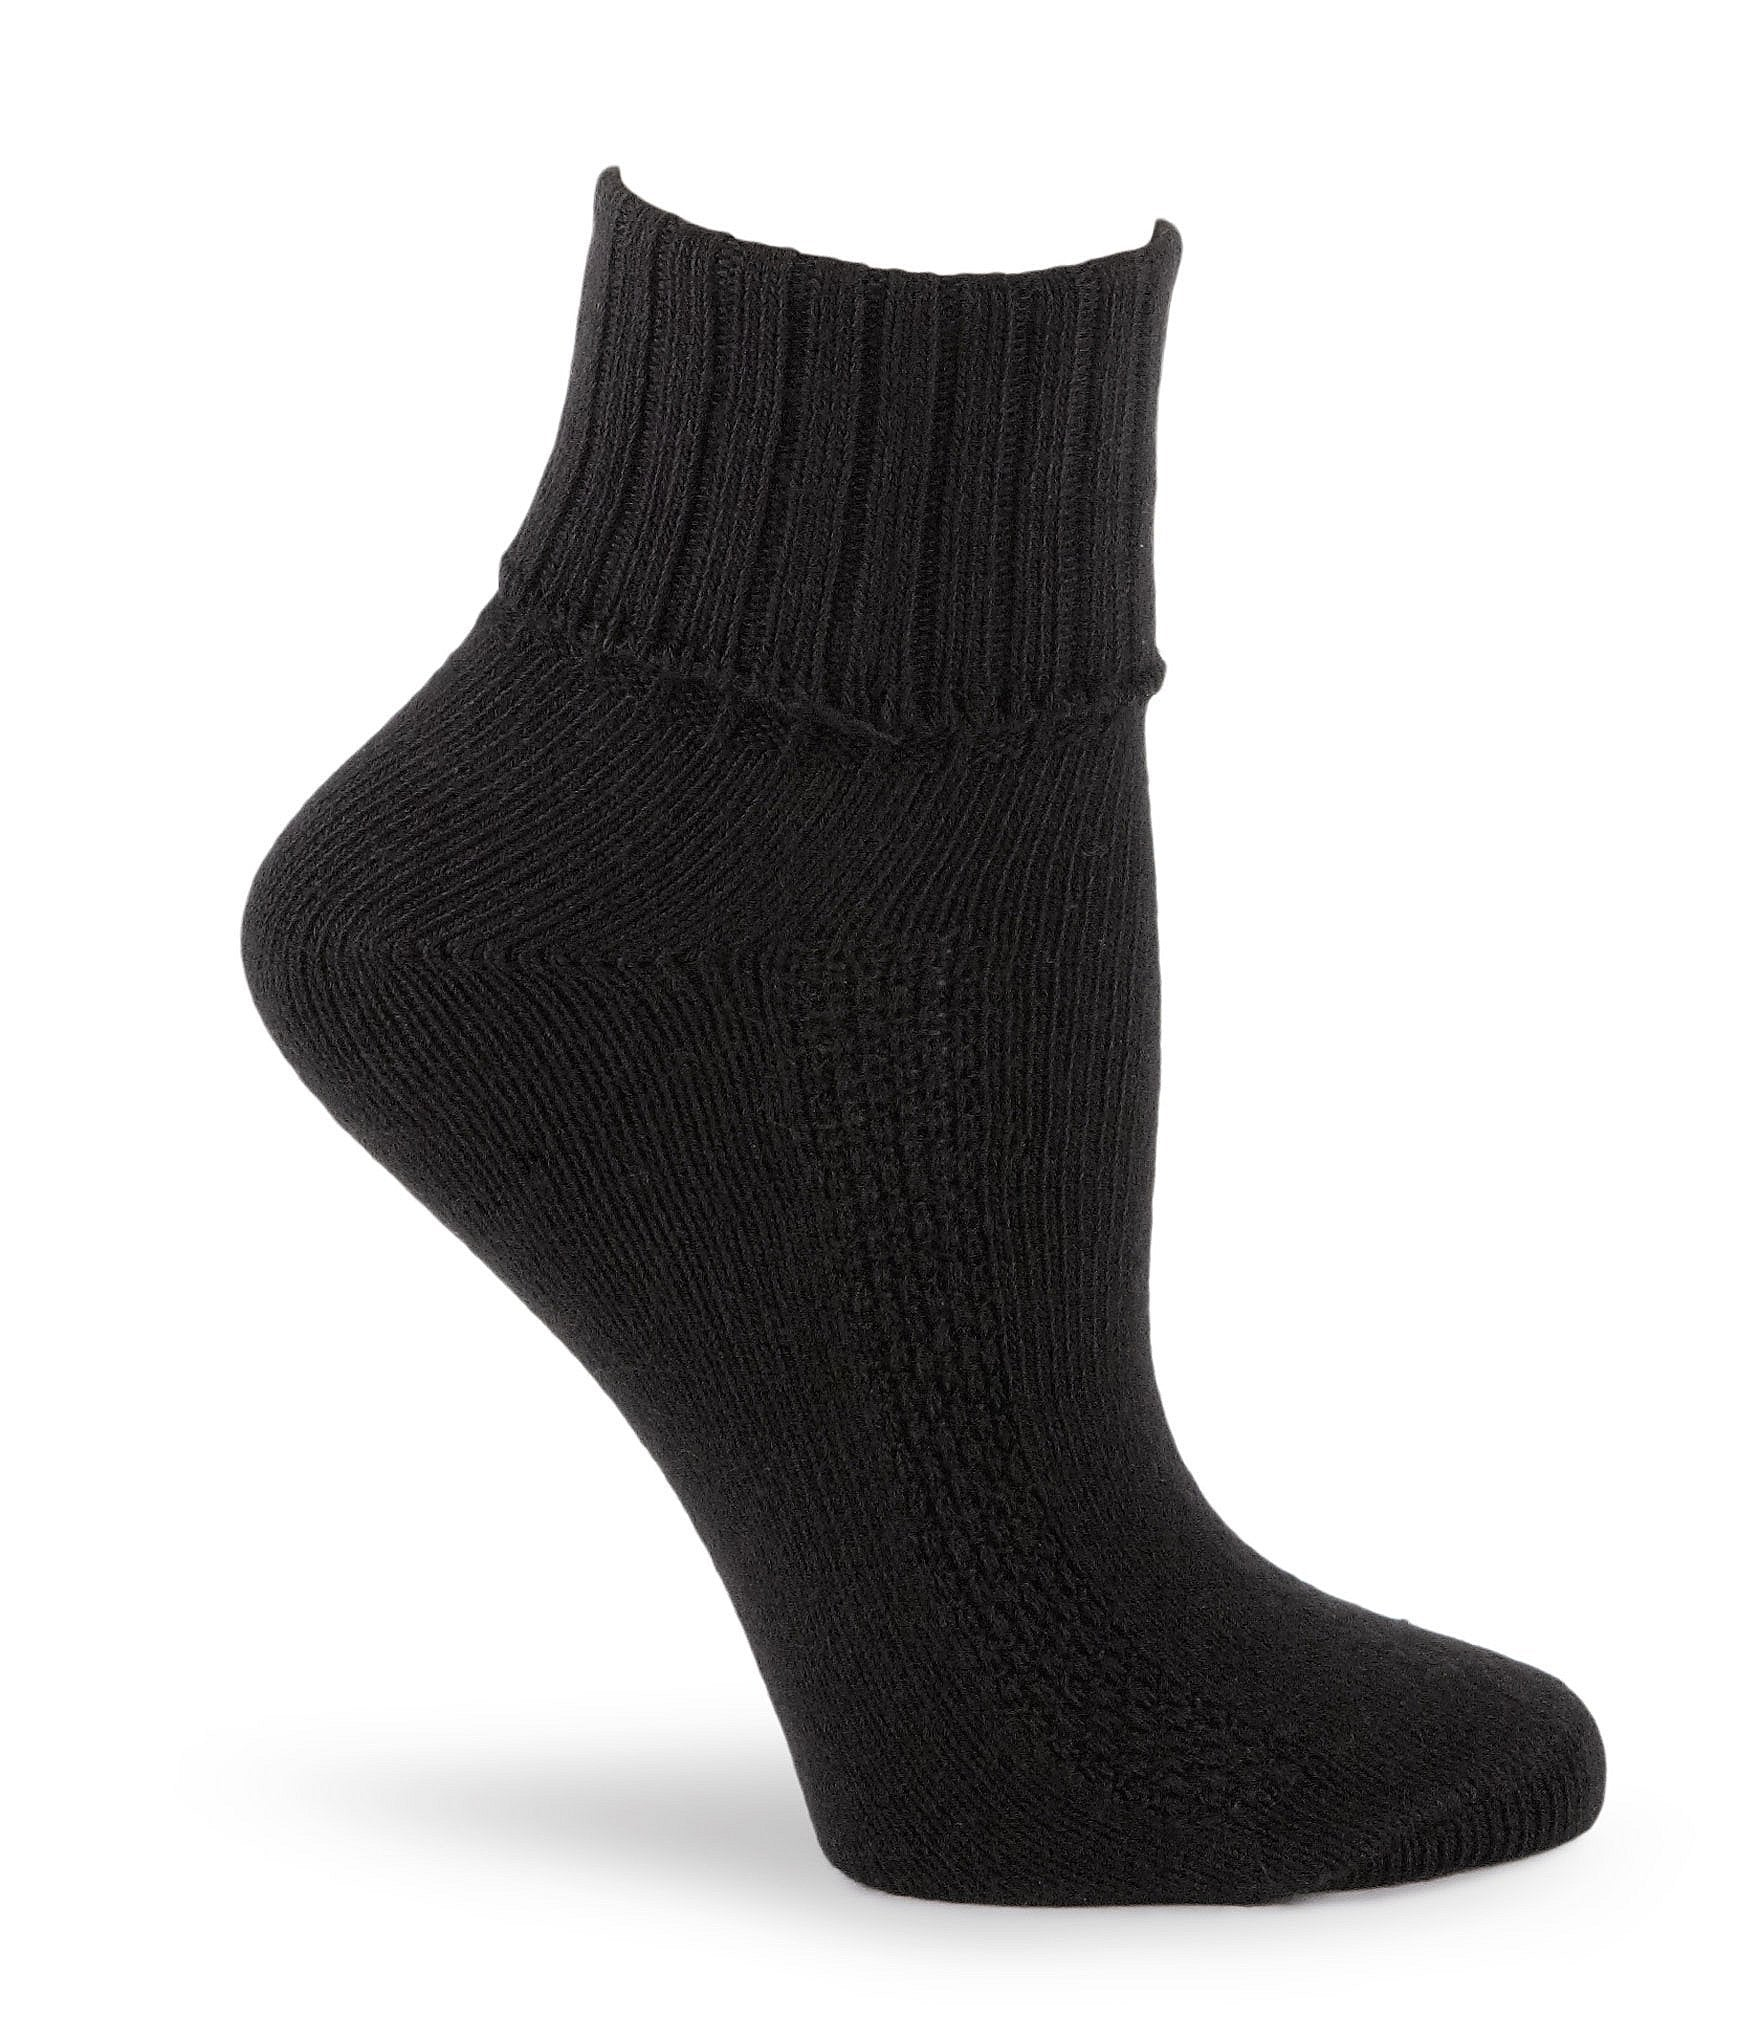 Black Ankle Socks for Men (12PC)